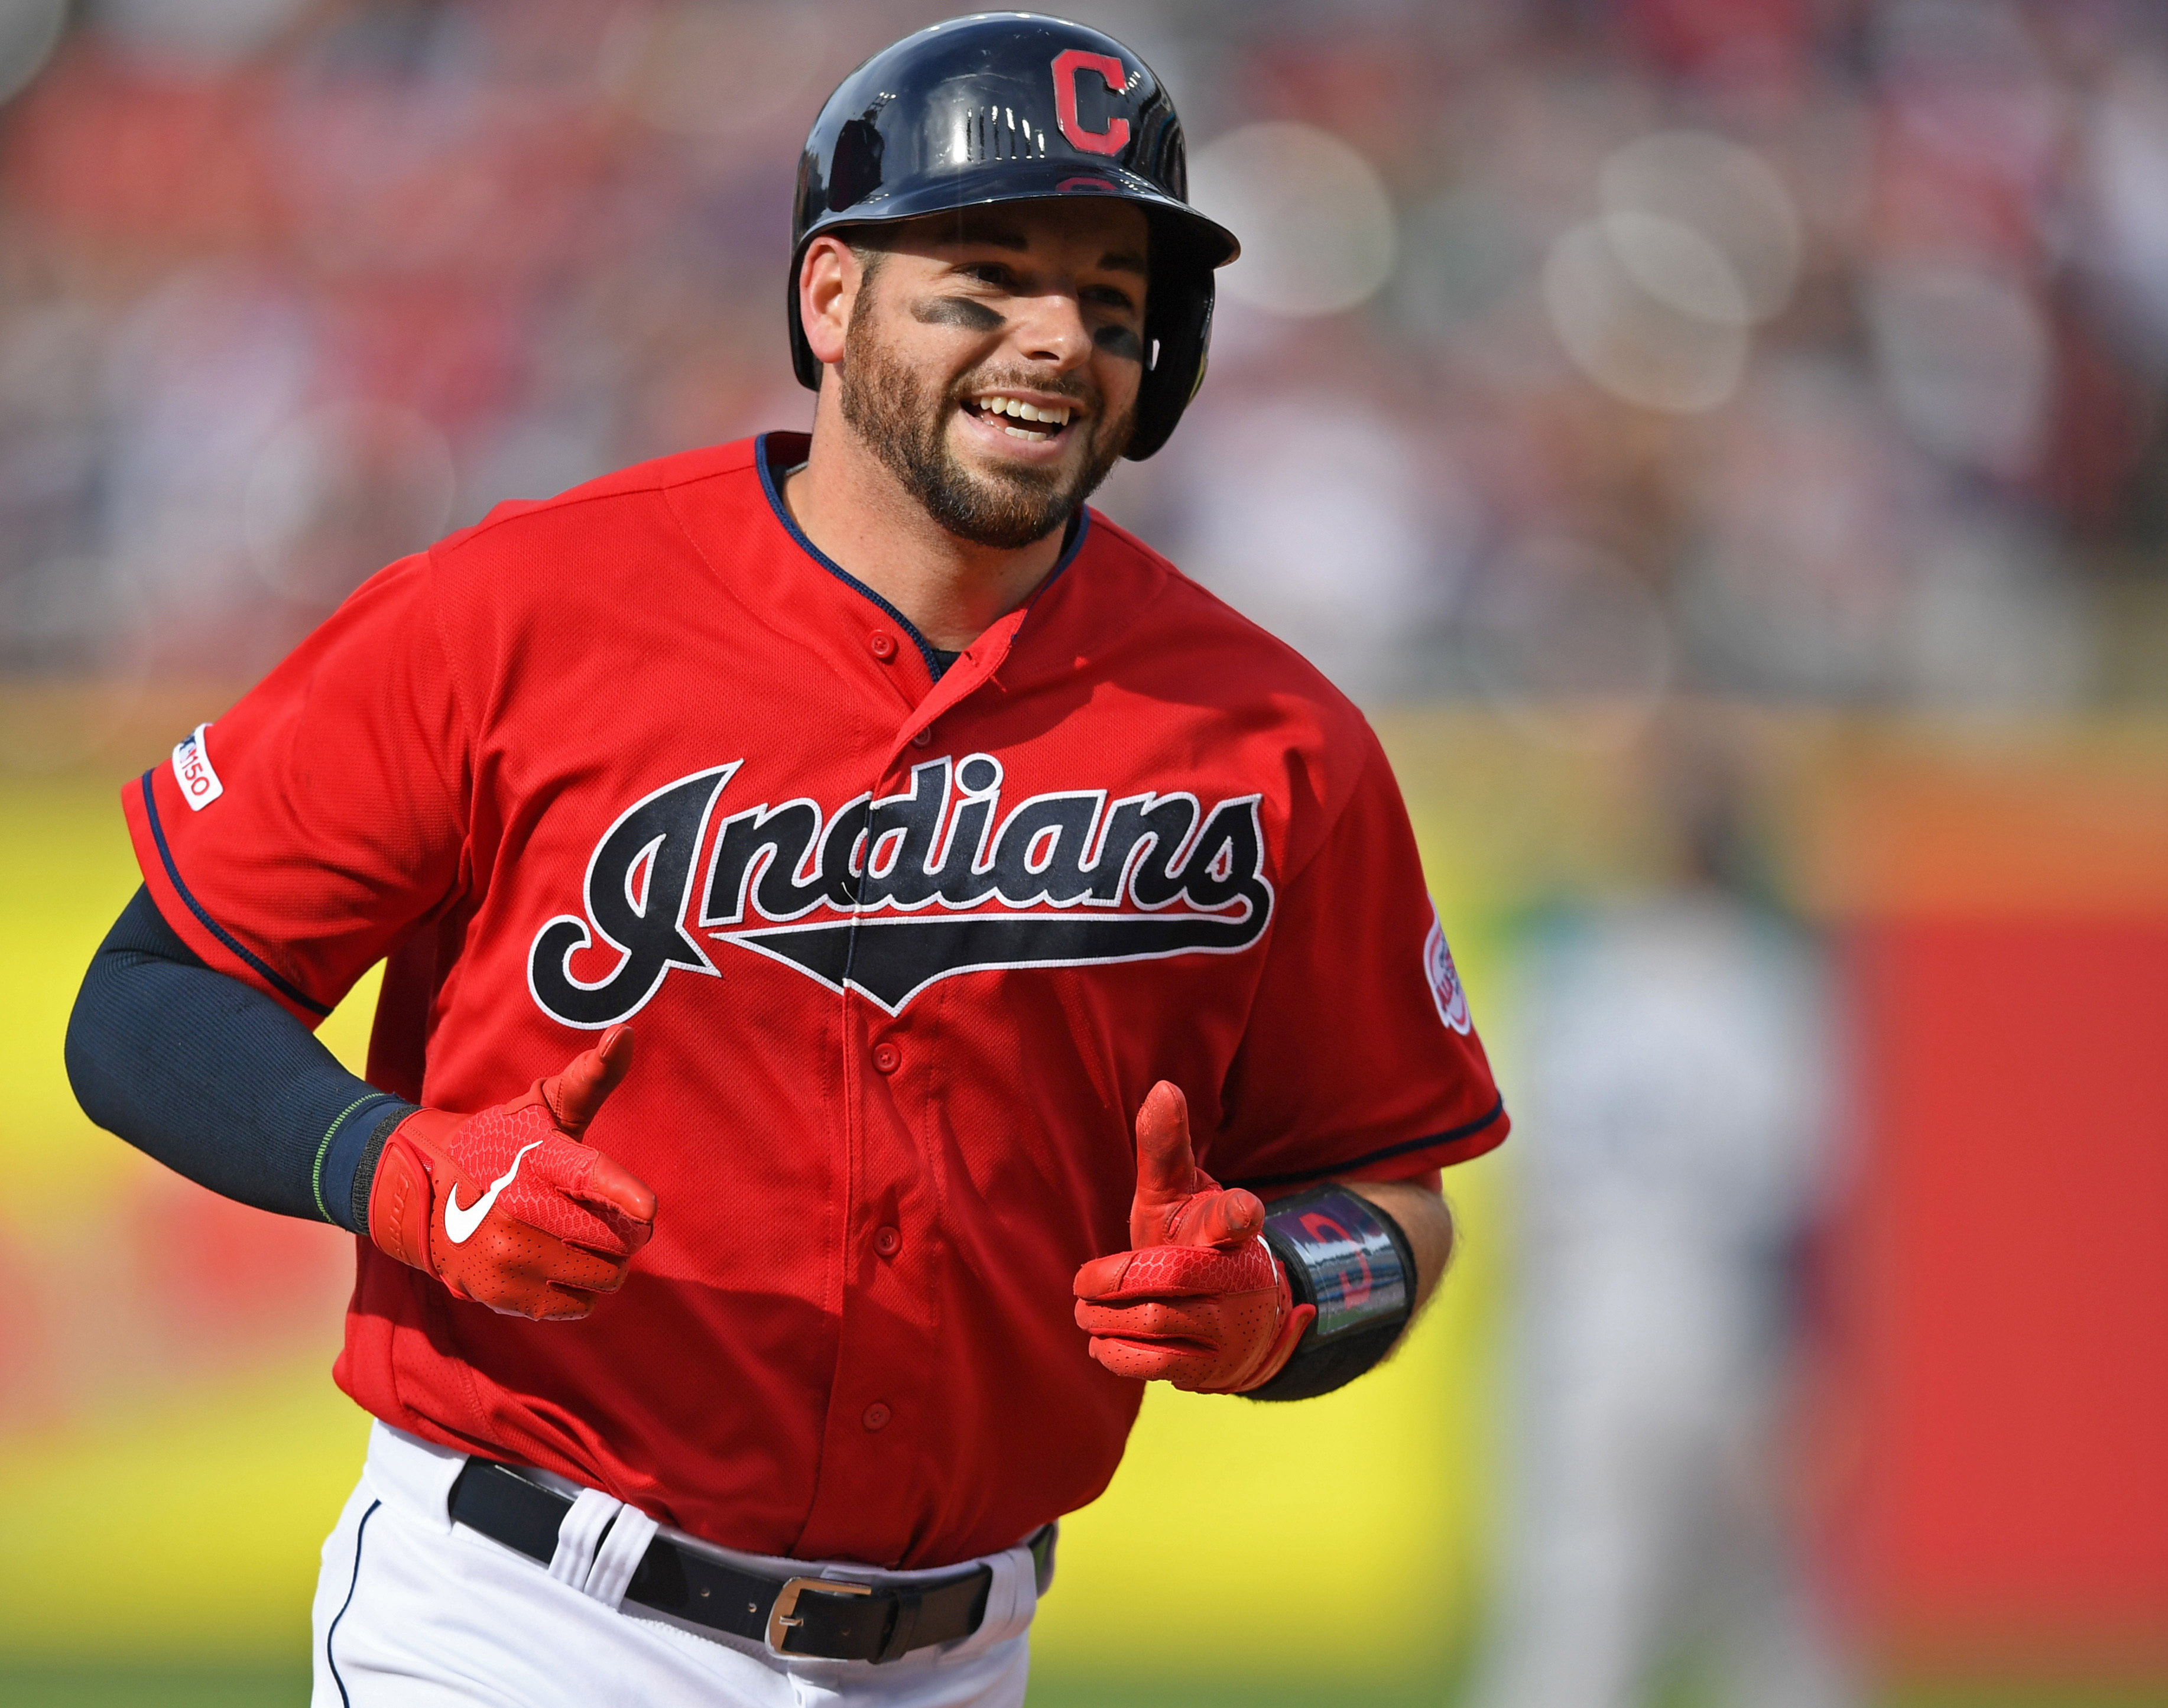 Red Sox sign catcher Kevin Plawecki from the Indians